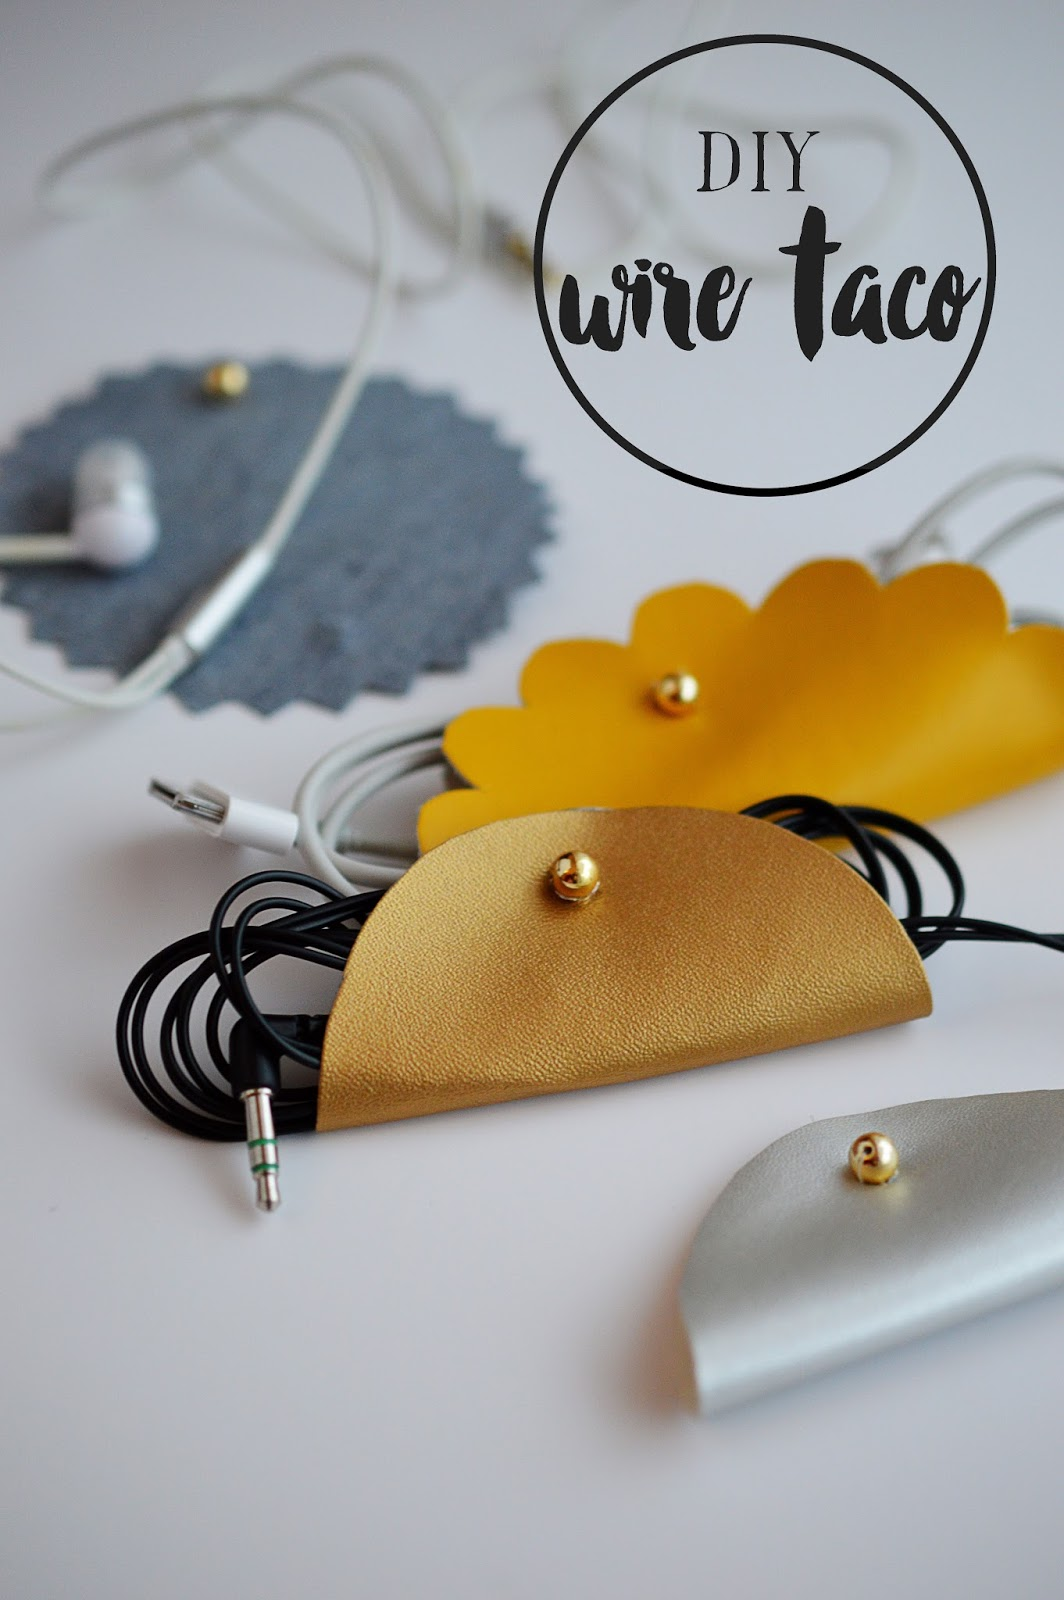 DIY Wire Tacos | Motte's Blog